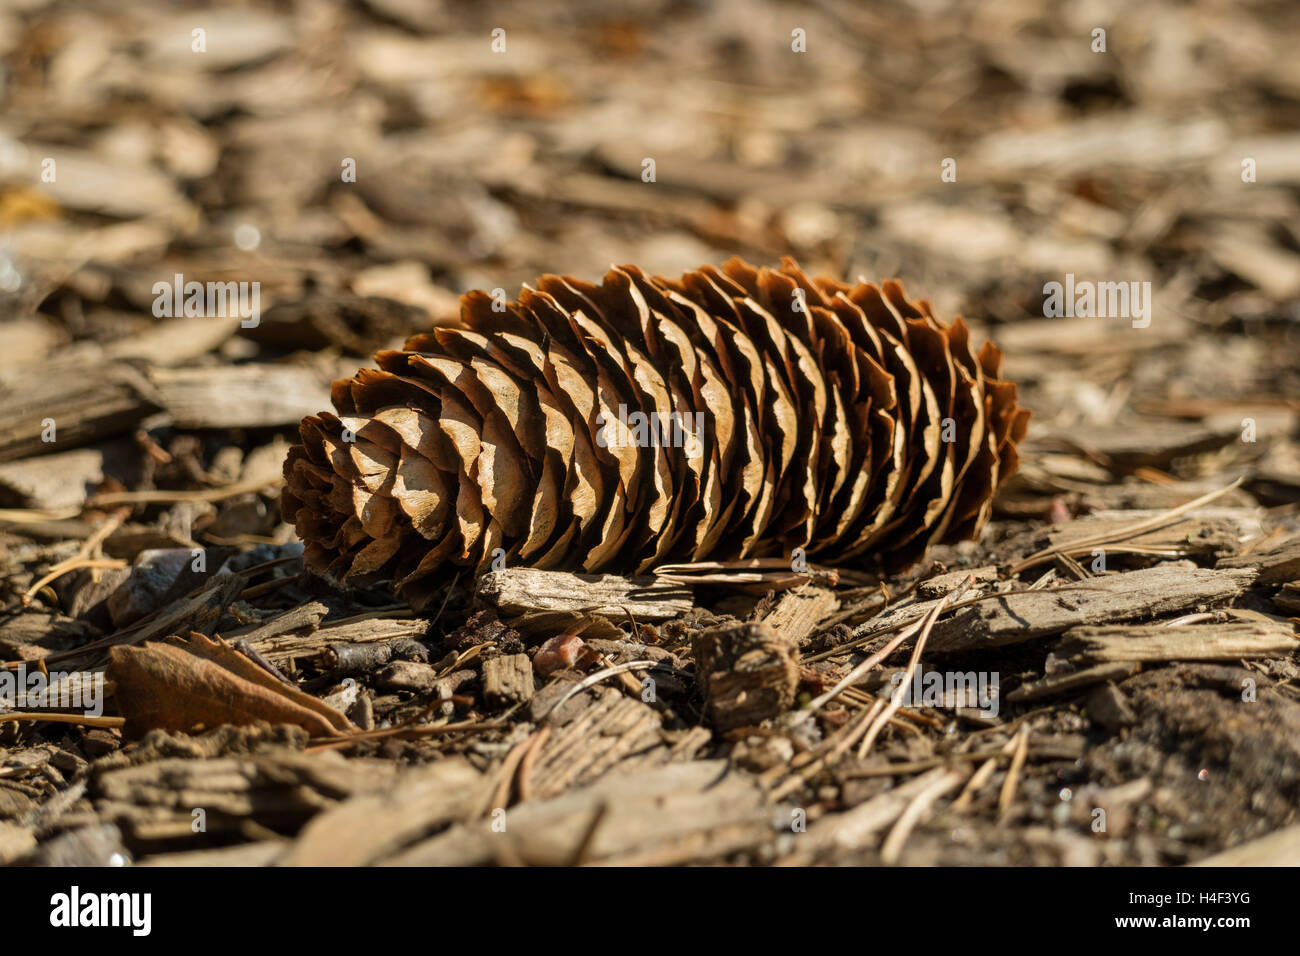 Fallen single conifer cone in the wood - Stock Image